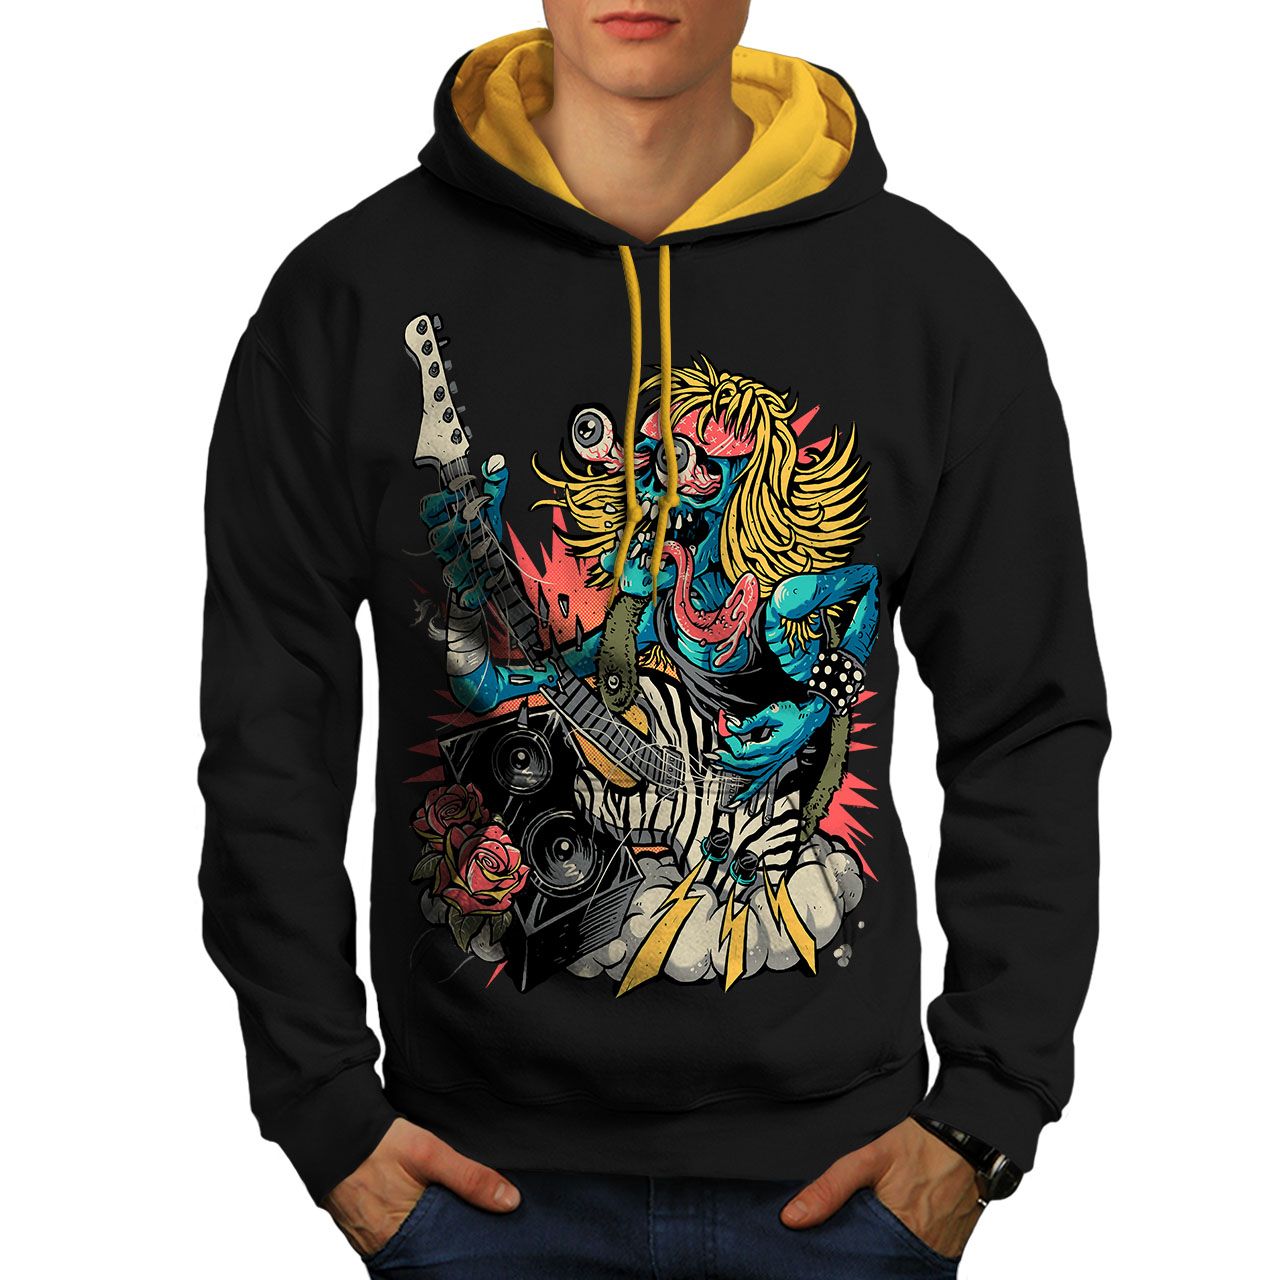 Instrument Music Guitar Men Contrast Hoodie NEWWellcoda